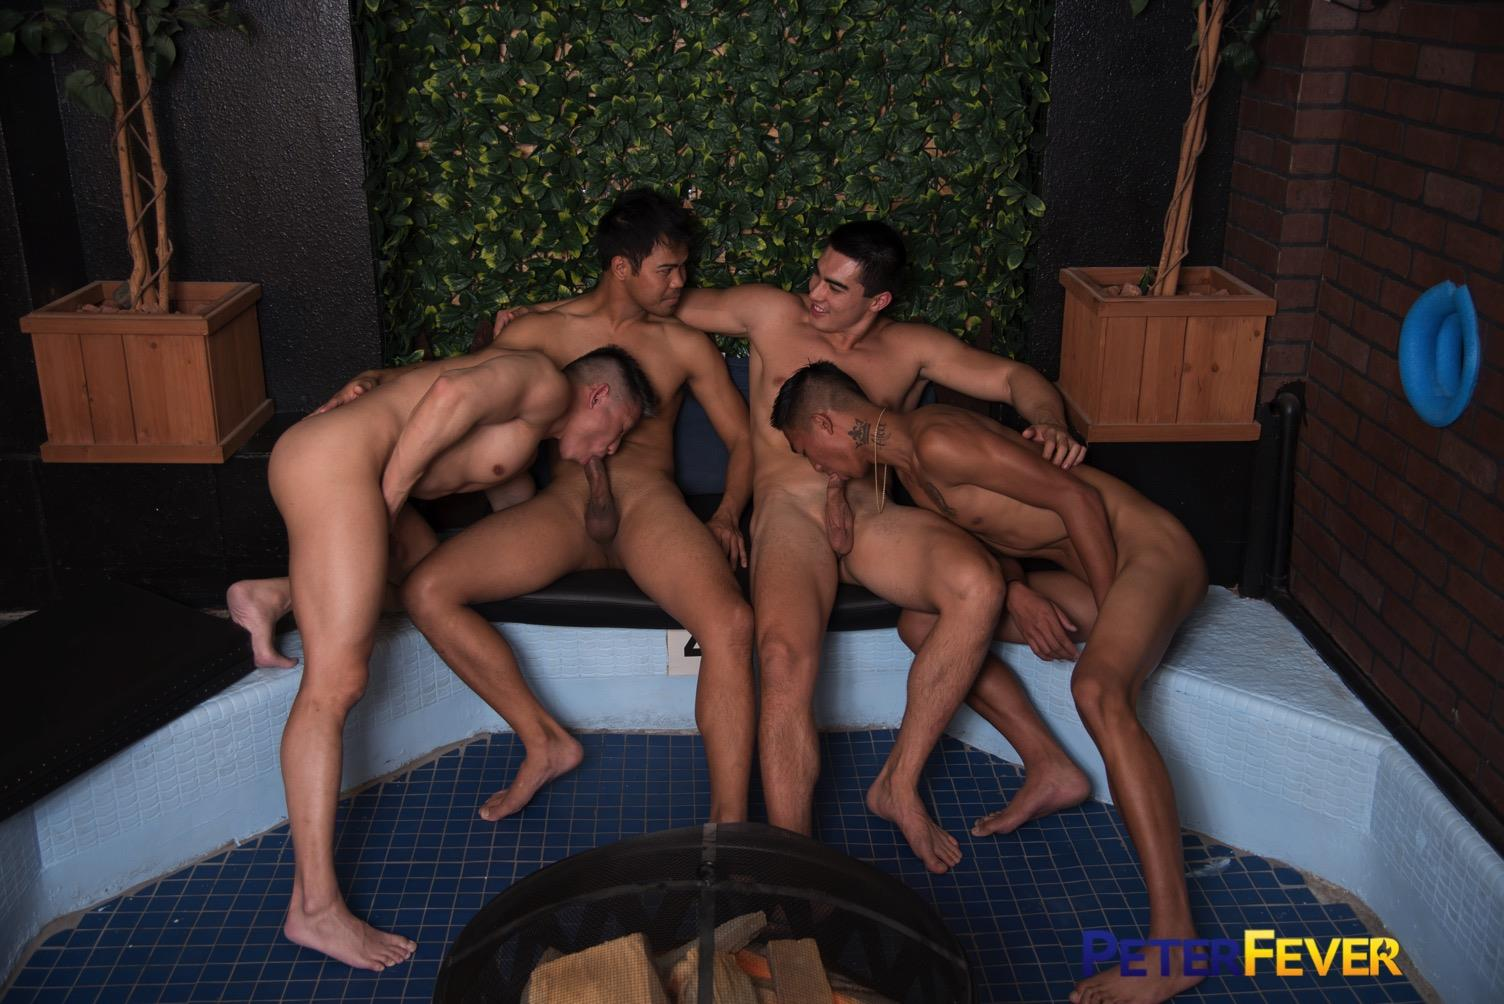 Peter-Fever-John-Rene-and-Alec-Cruz-and-Axel-Kane-and-Jessie-Lee-Big-Asian-Cocks-10 Impromptu Asian Orgy At An Asian Bathhouse